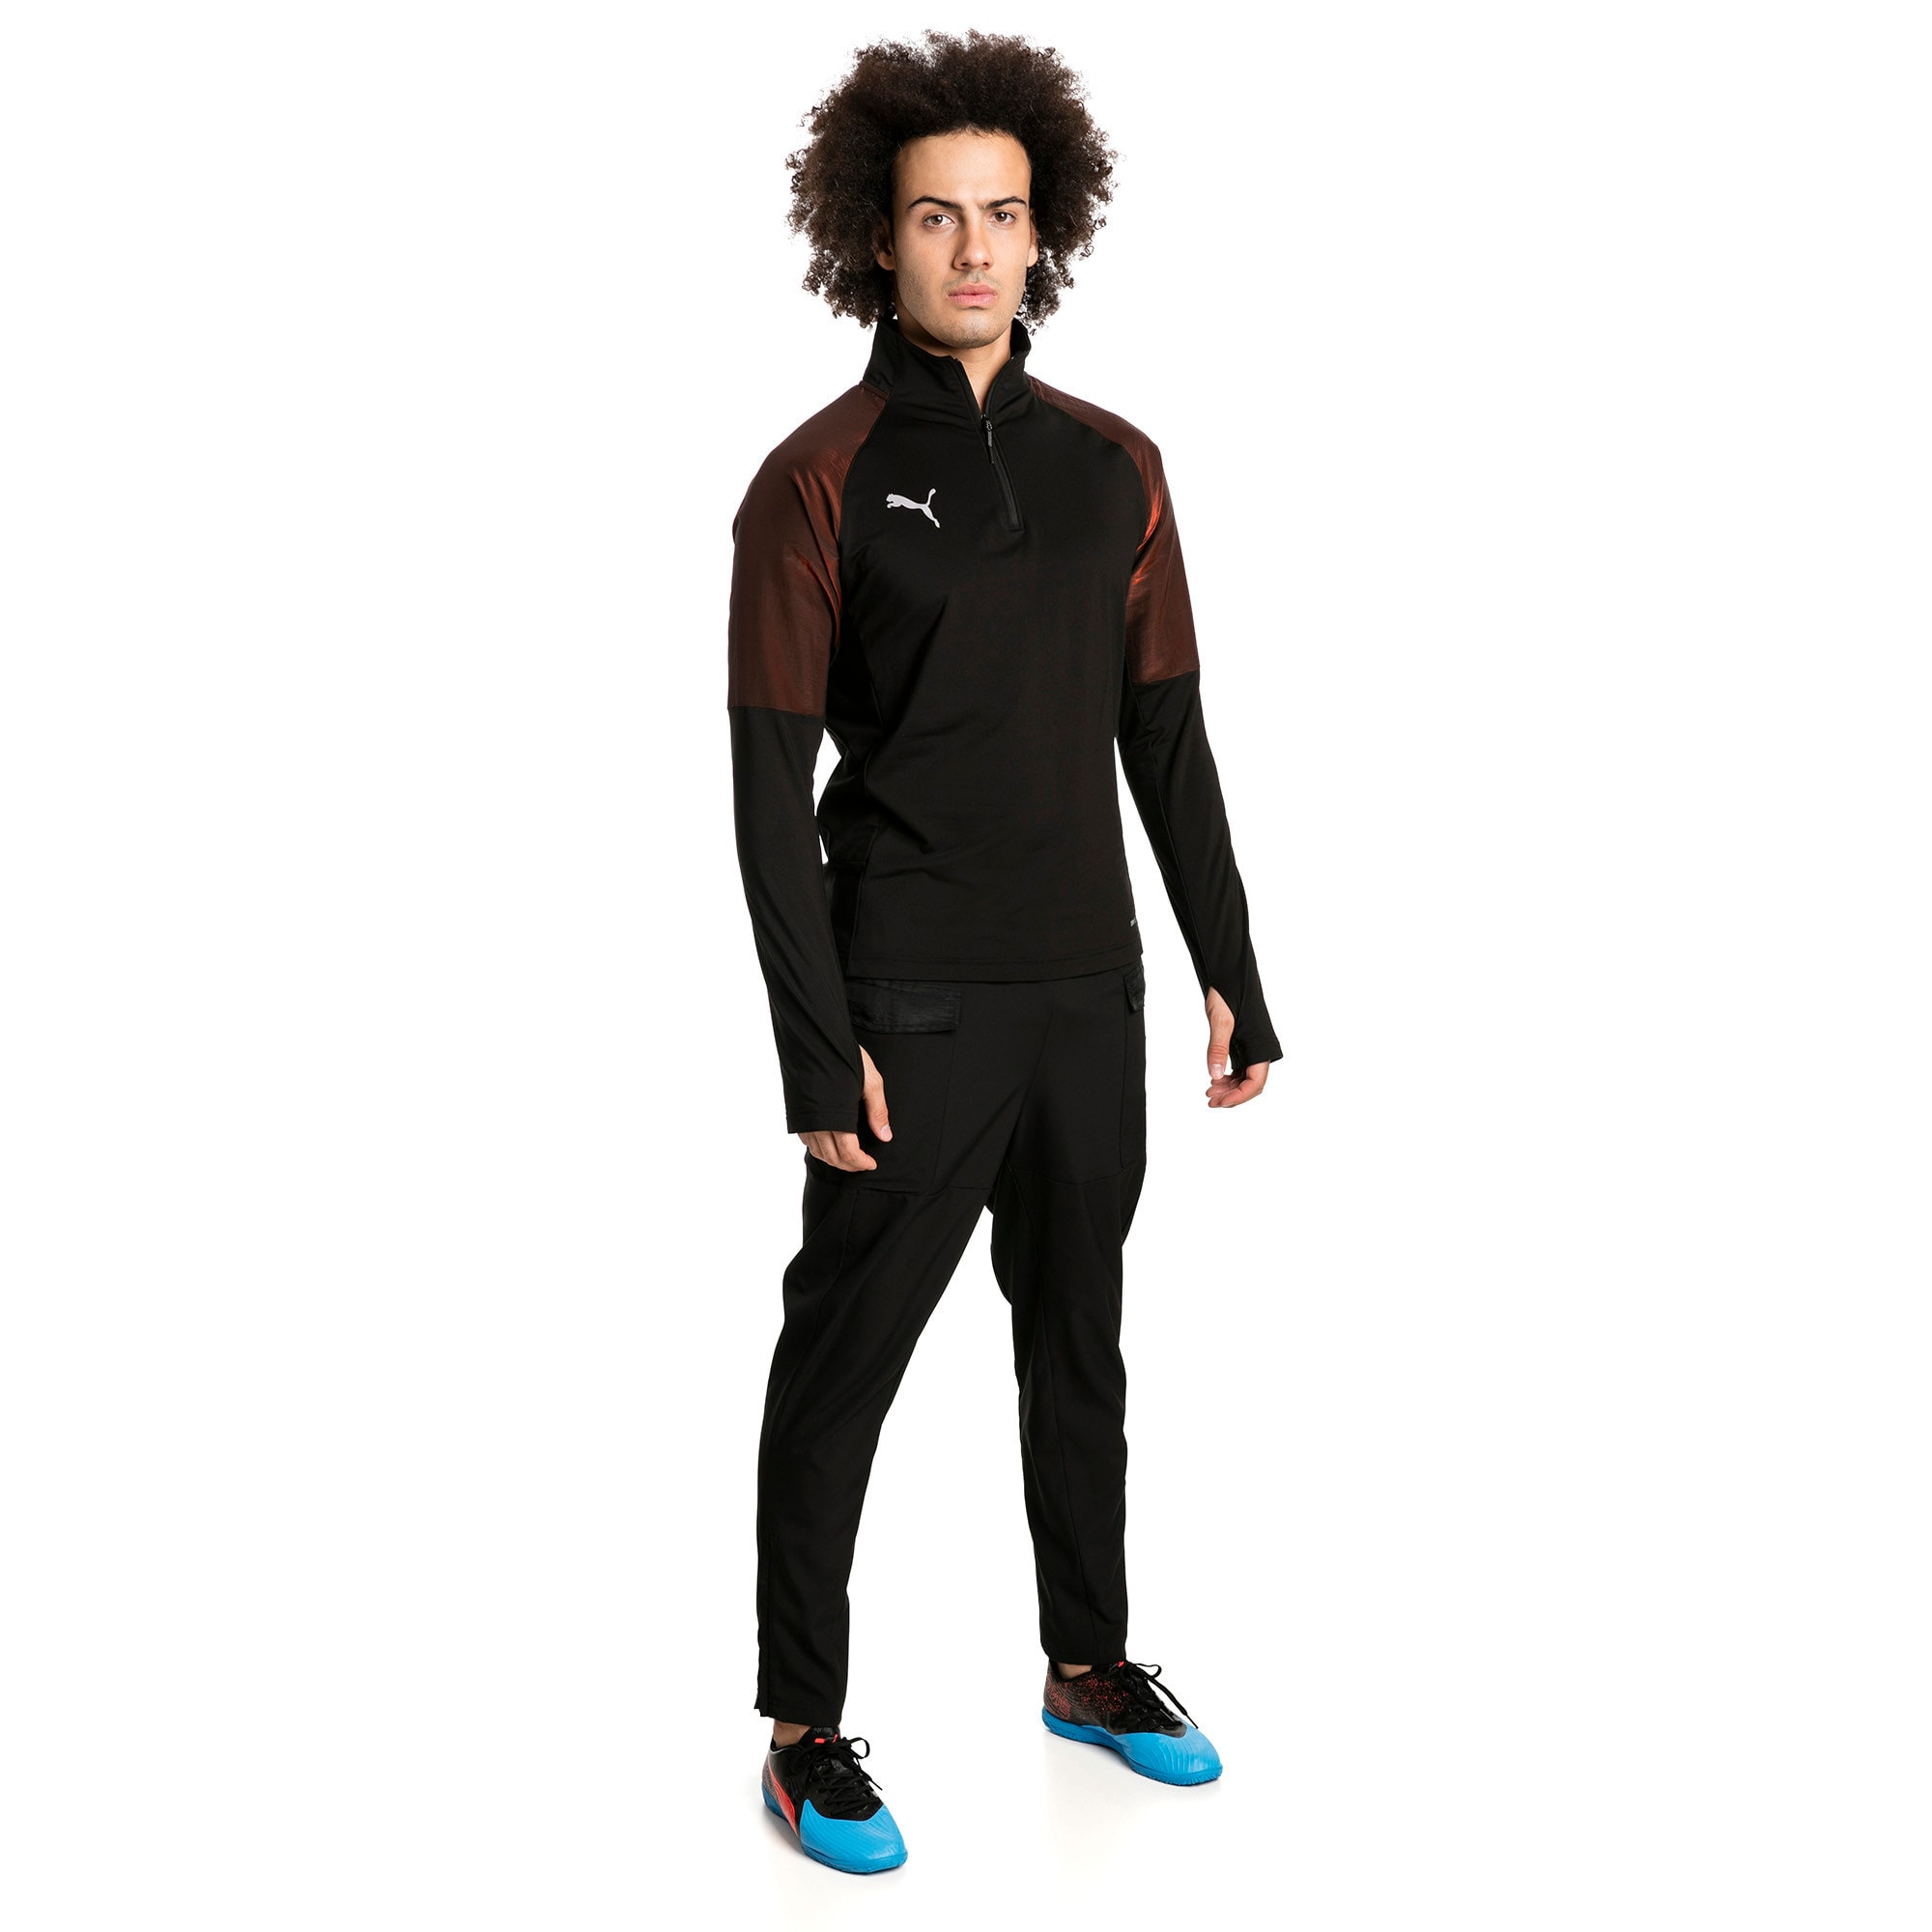 Thumbnail 3 of ftblNXT 1/4 Zip Herren Sweatshirt, Puma Black-Red Blast, medium